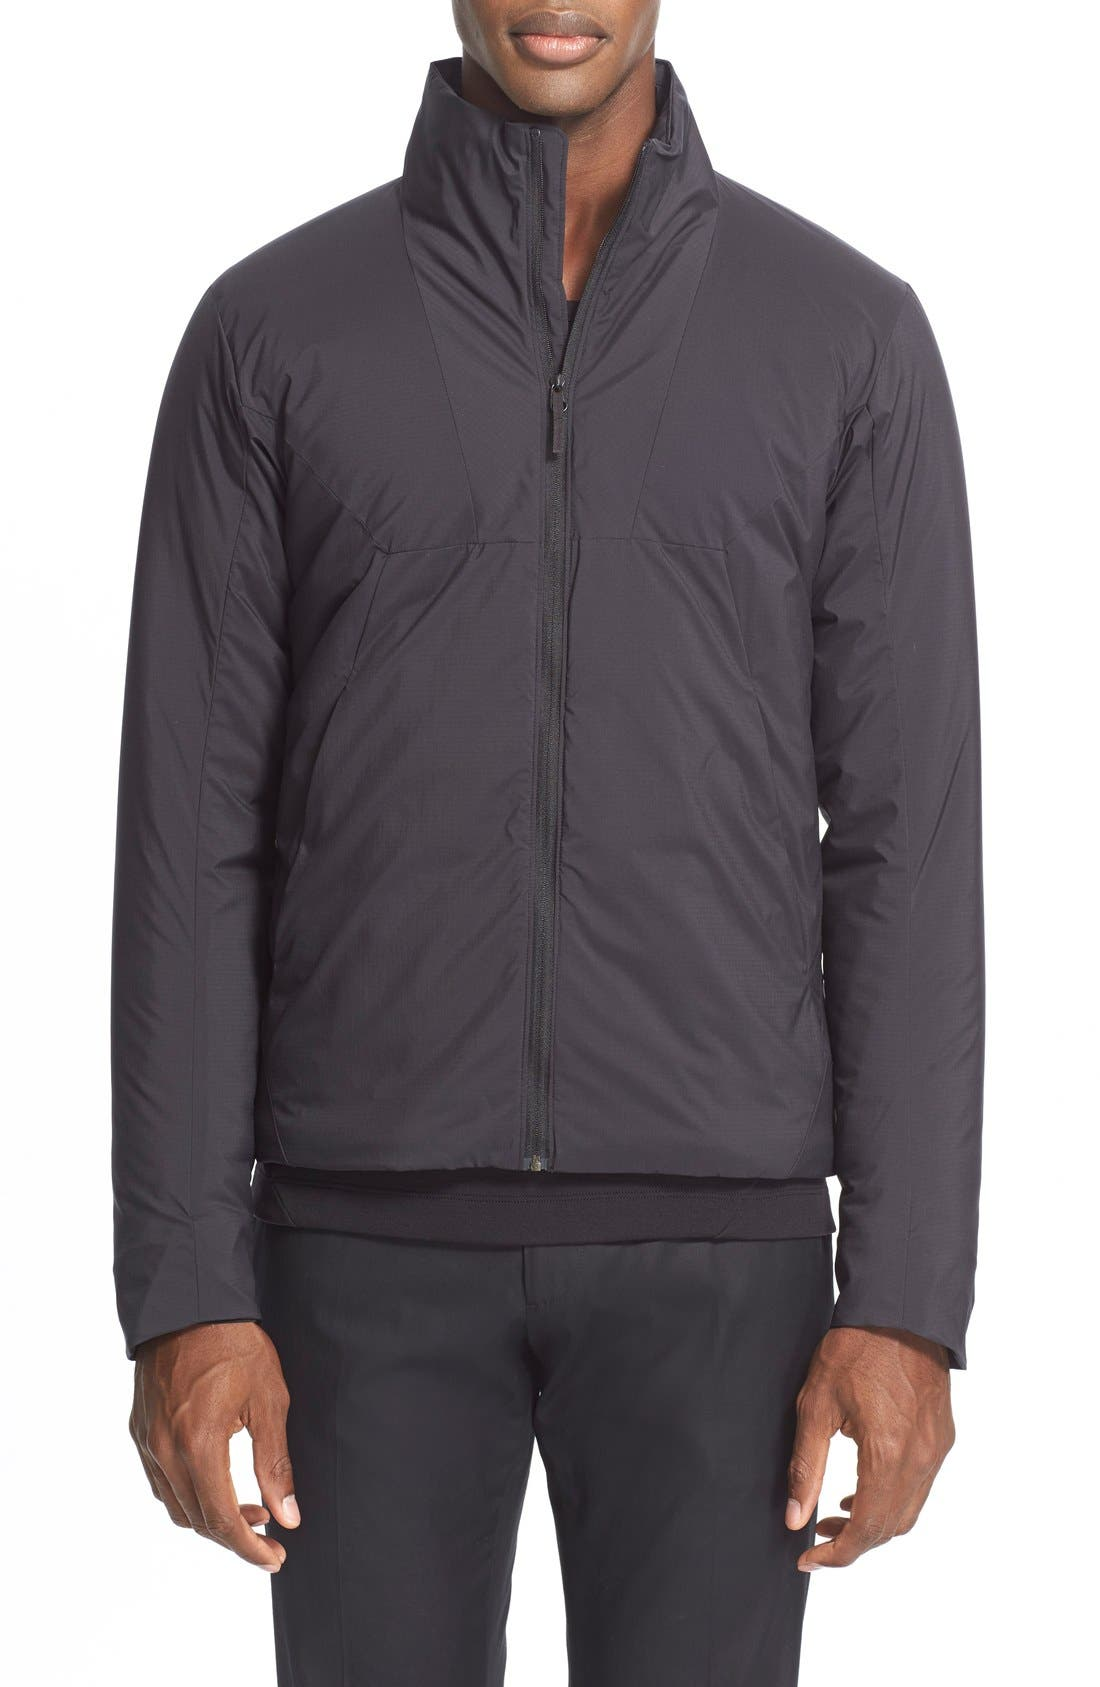 Main Image - Arc'teryx Veilance 'Mionn IS' Water Resistant Jacket